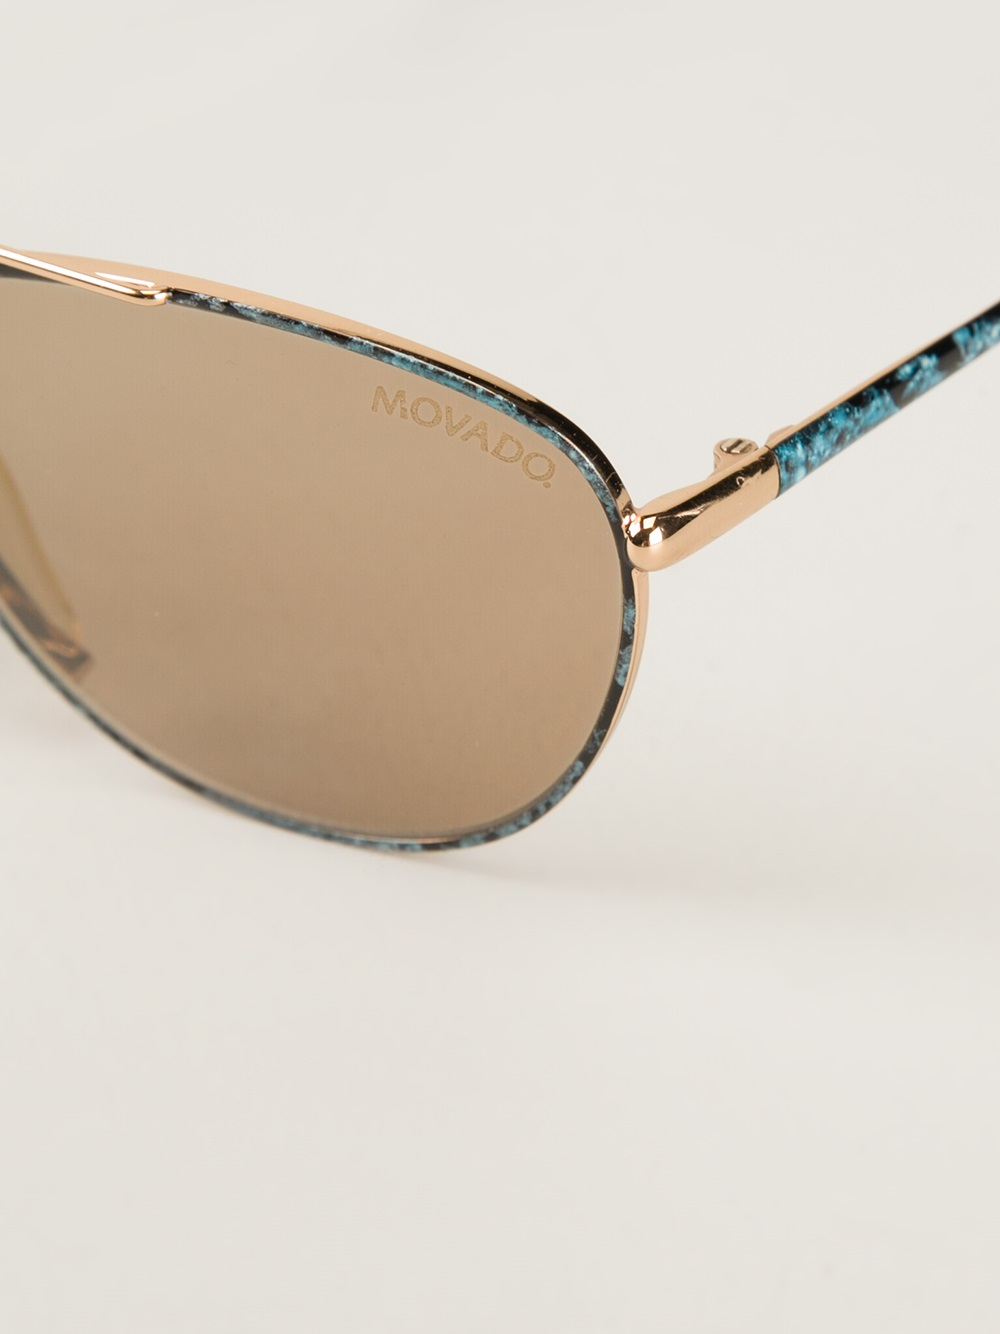 Gold Frame Oval Sunglasses : Carrera Oval Frame Sunglasses in Gold (metallic) Lyst